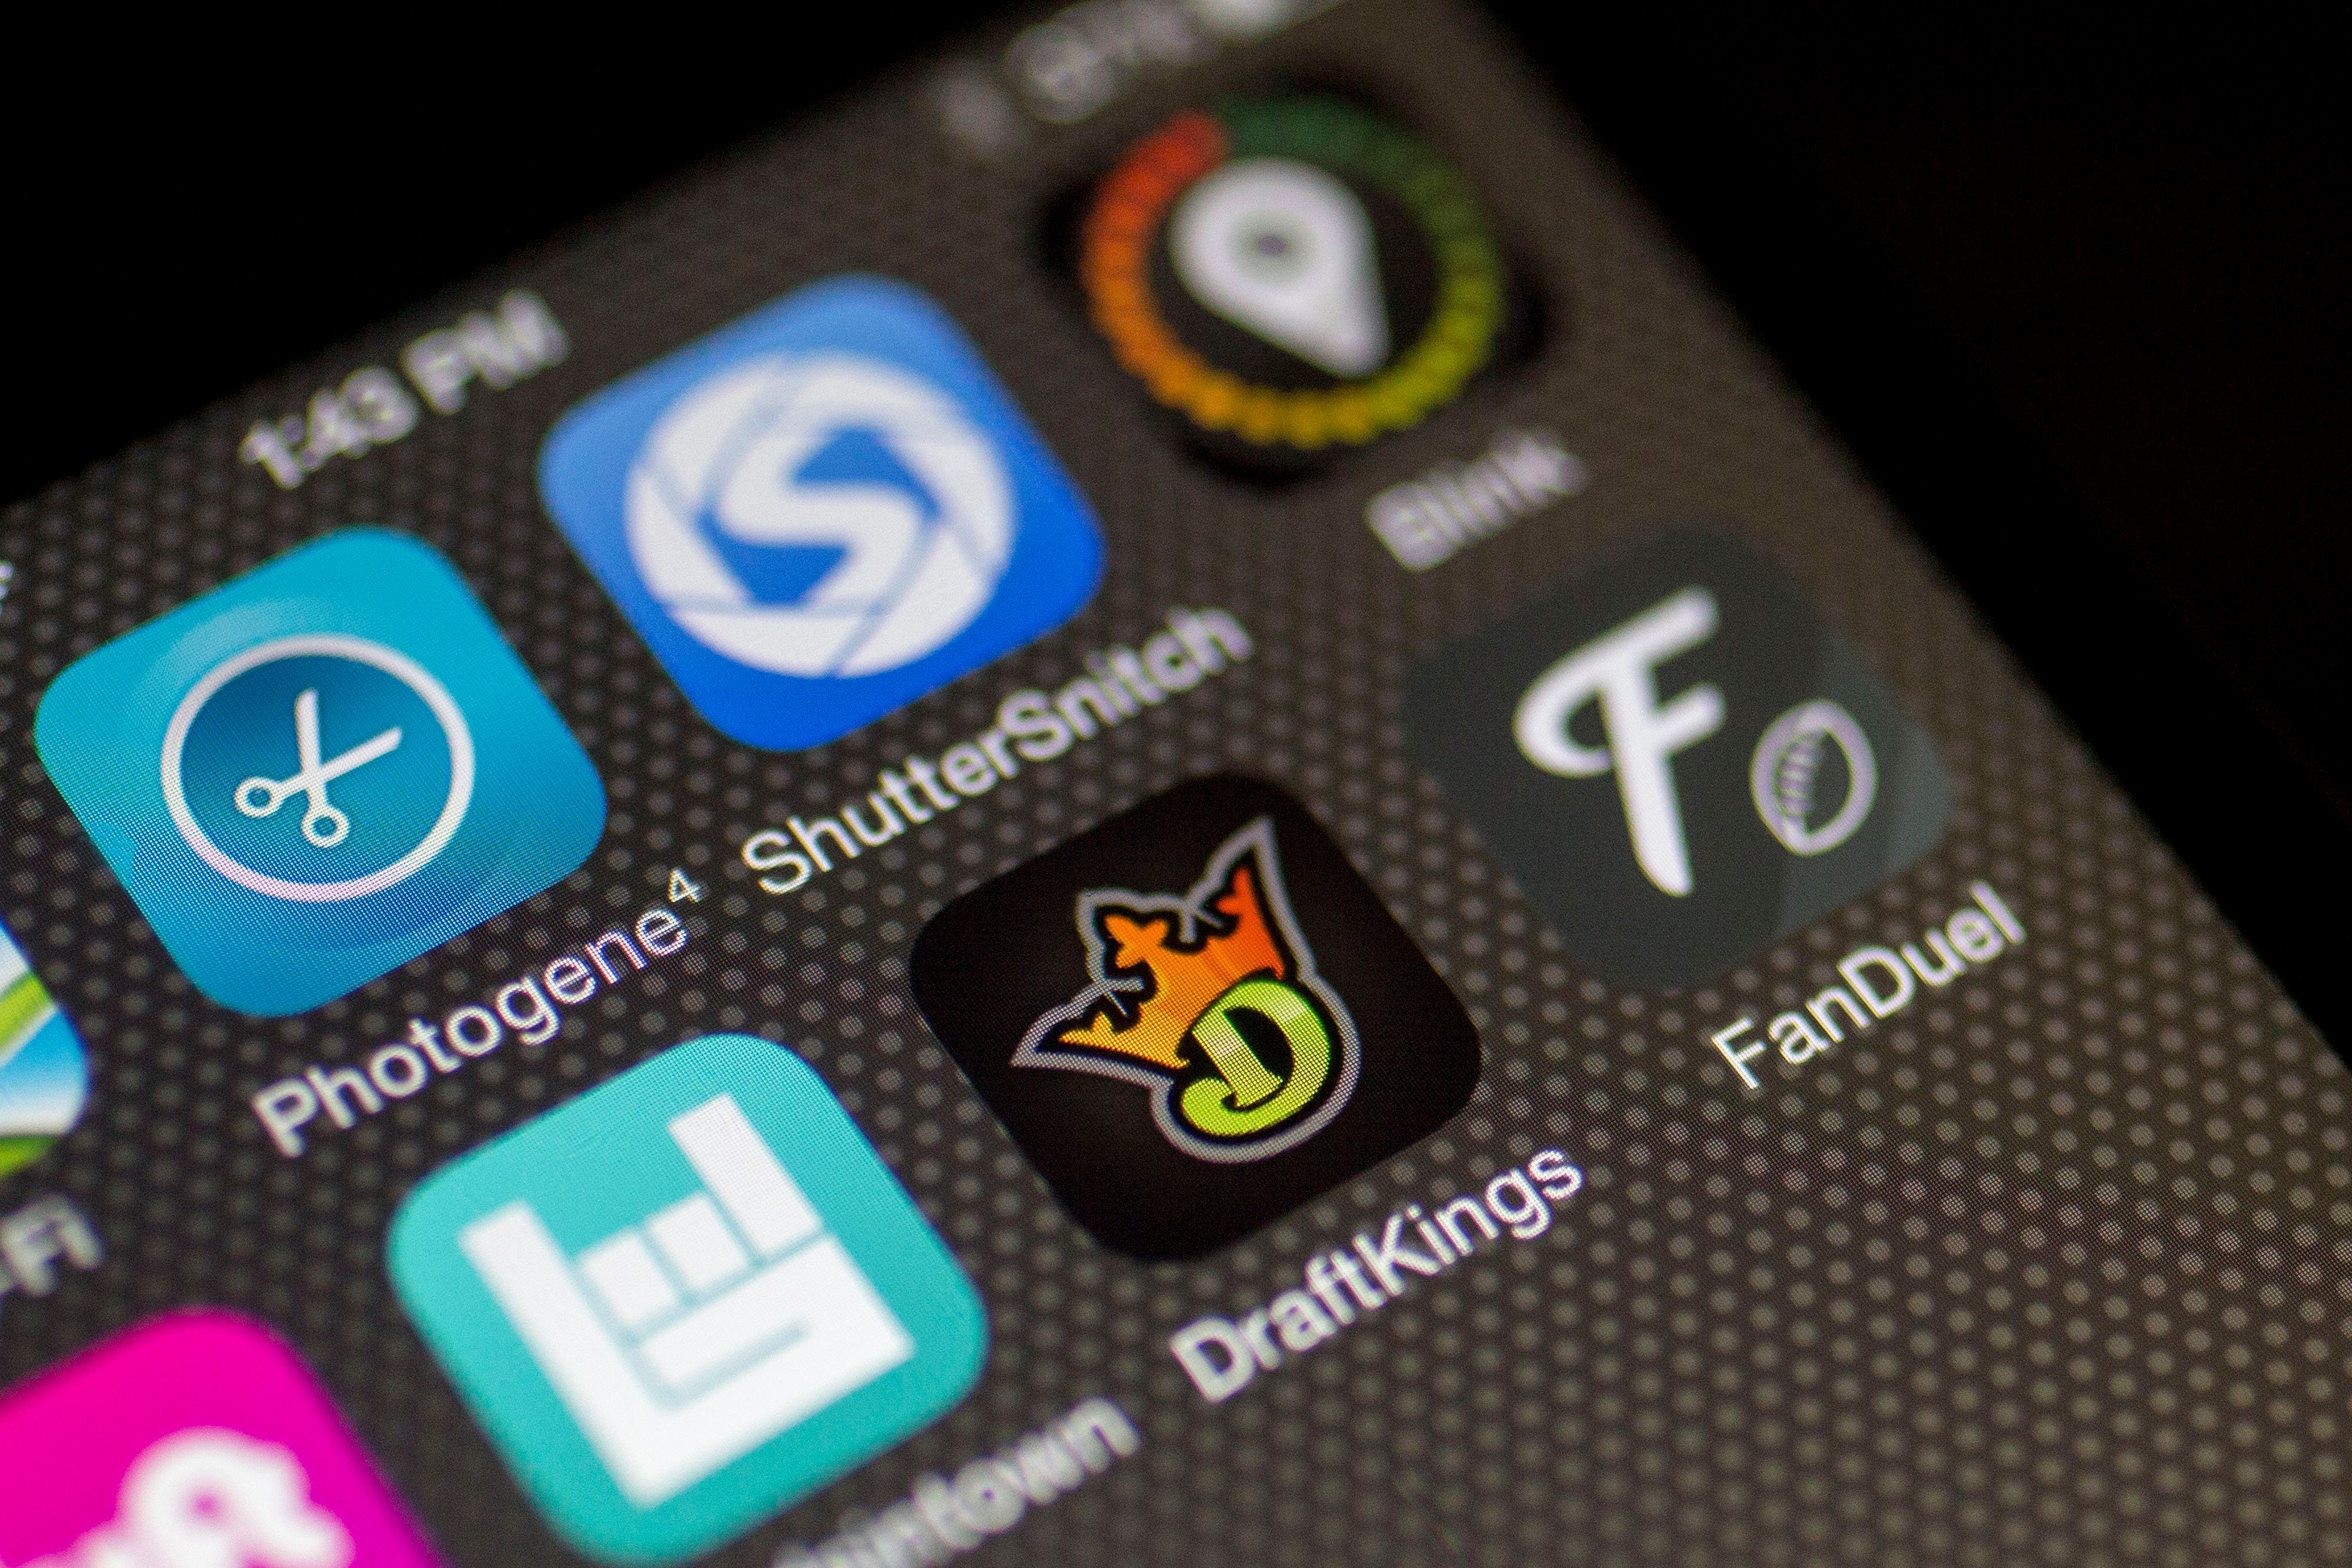 The DraftKings Inc. and FanDuel Inc. apps are displayed on an Apple Inc. iPhone in Washington, D.C., U.S., on Sunday, Oct. 4, 2015. Fantasy sports companies DraftKings Inc. and FanDuel Inc. raised a total of $575 million in July from investors including KKR & Co., 21st Century Fox Inc. and Major League Baseball to attract players to games that pay out millions of dollars in cash prizes in daily contests. Photographer: Andrew Harrer/Bloomberg via Getty Images